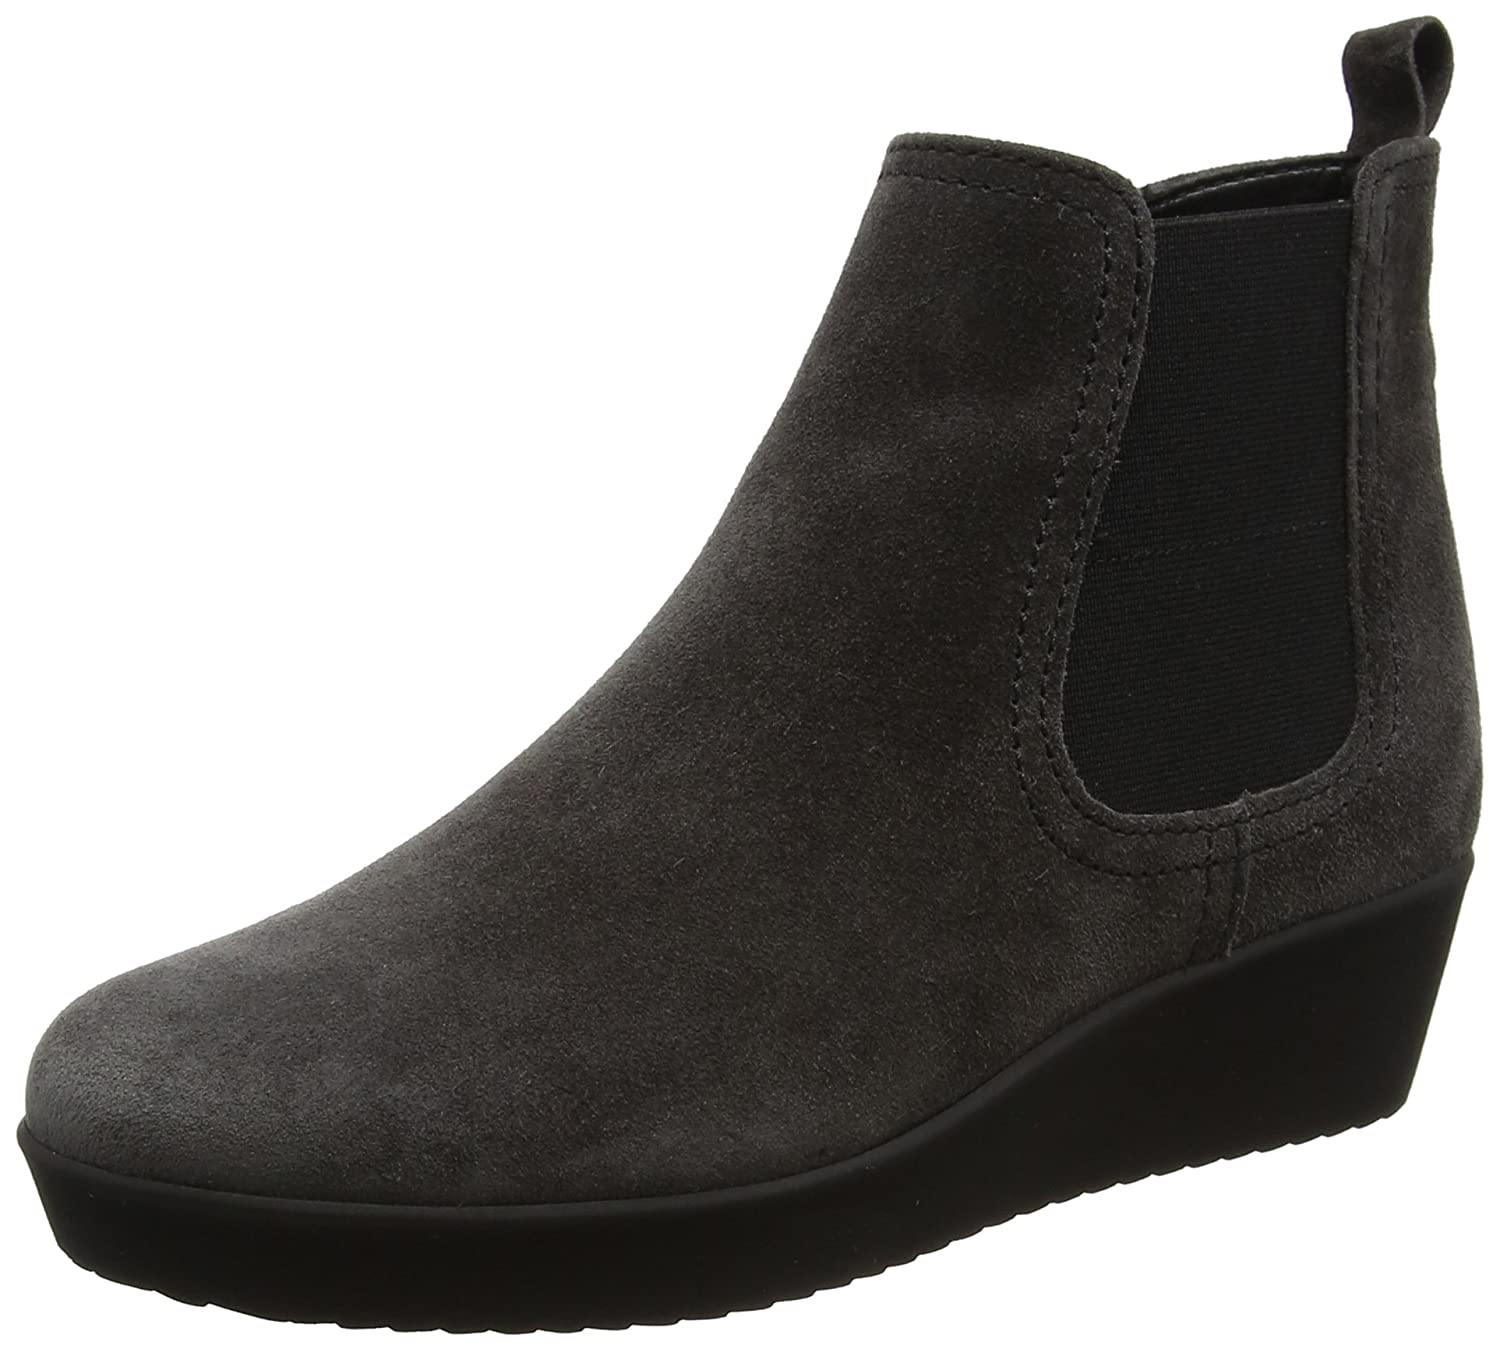 Gabor Shoes Comfort Basic, Botas Para Mujer38 EU|Gris (49 Dark-grey Micro)